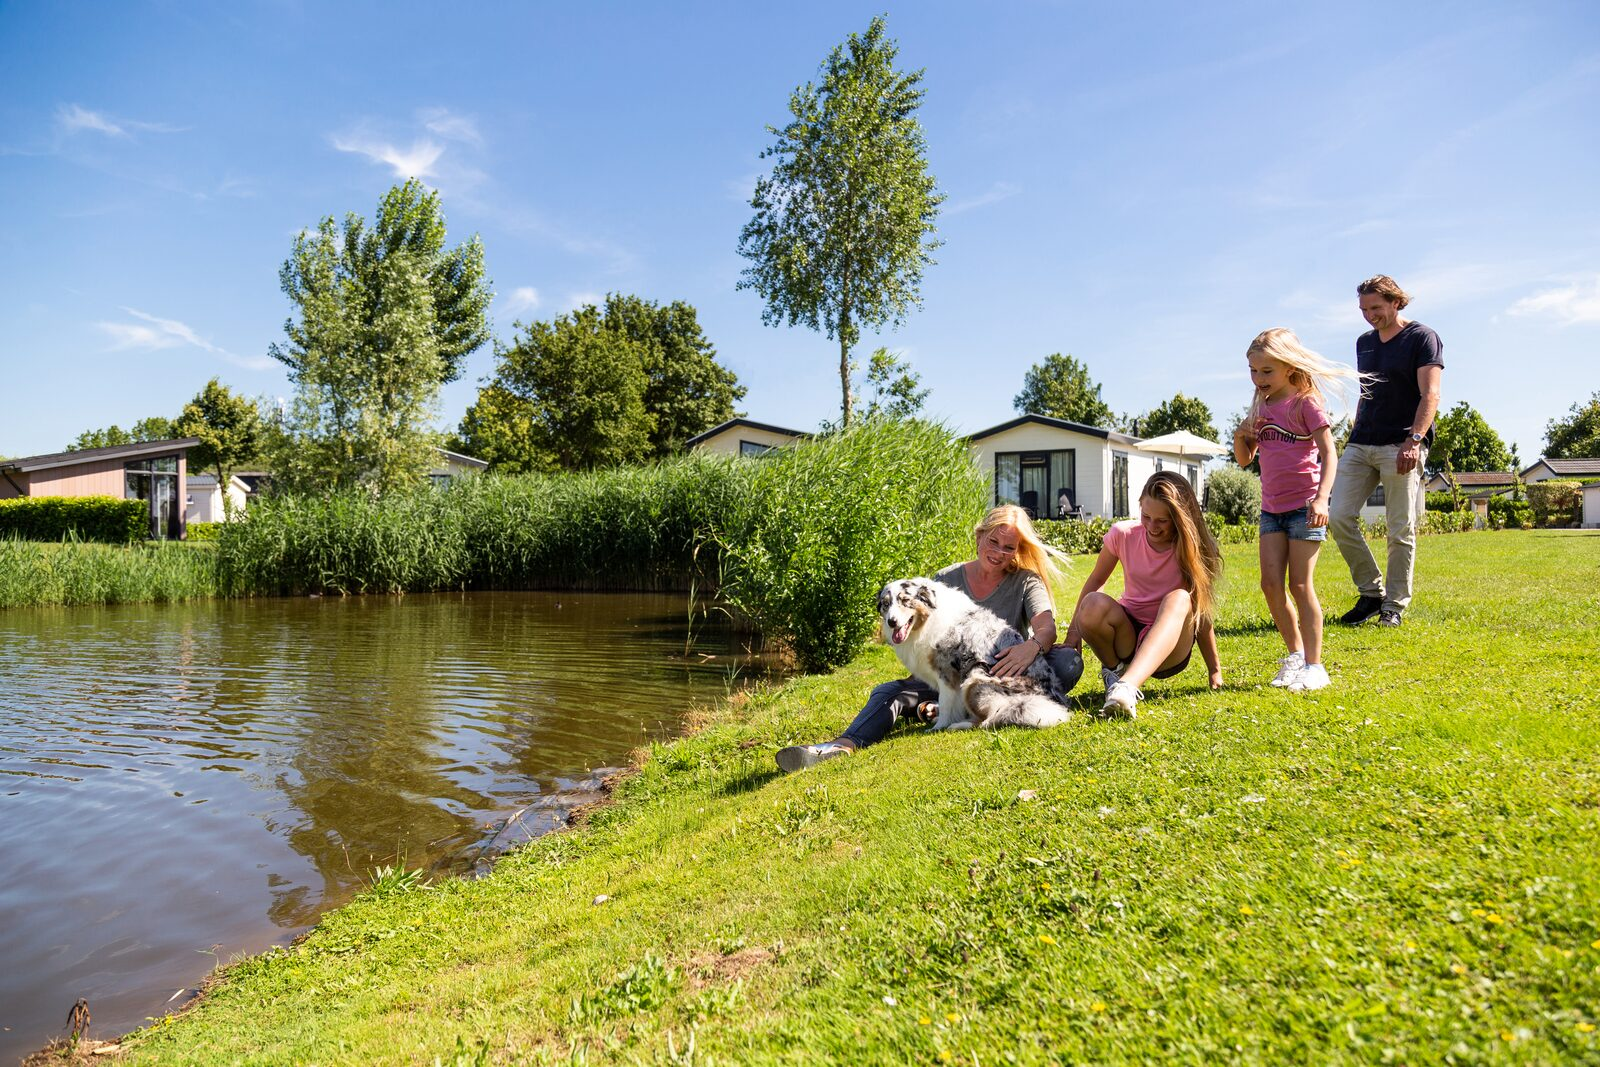 Recreational park the Esmeer | Bommelerwaard